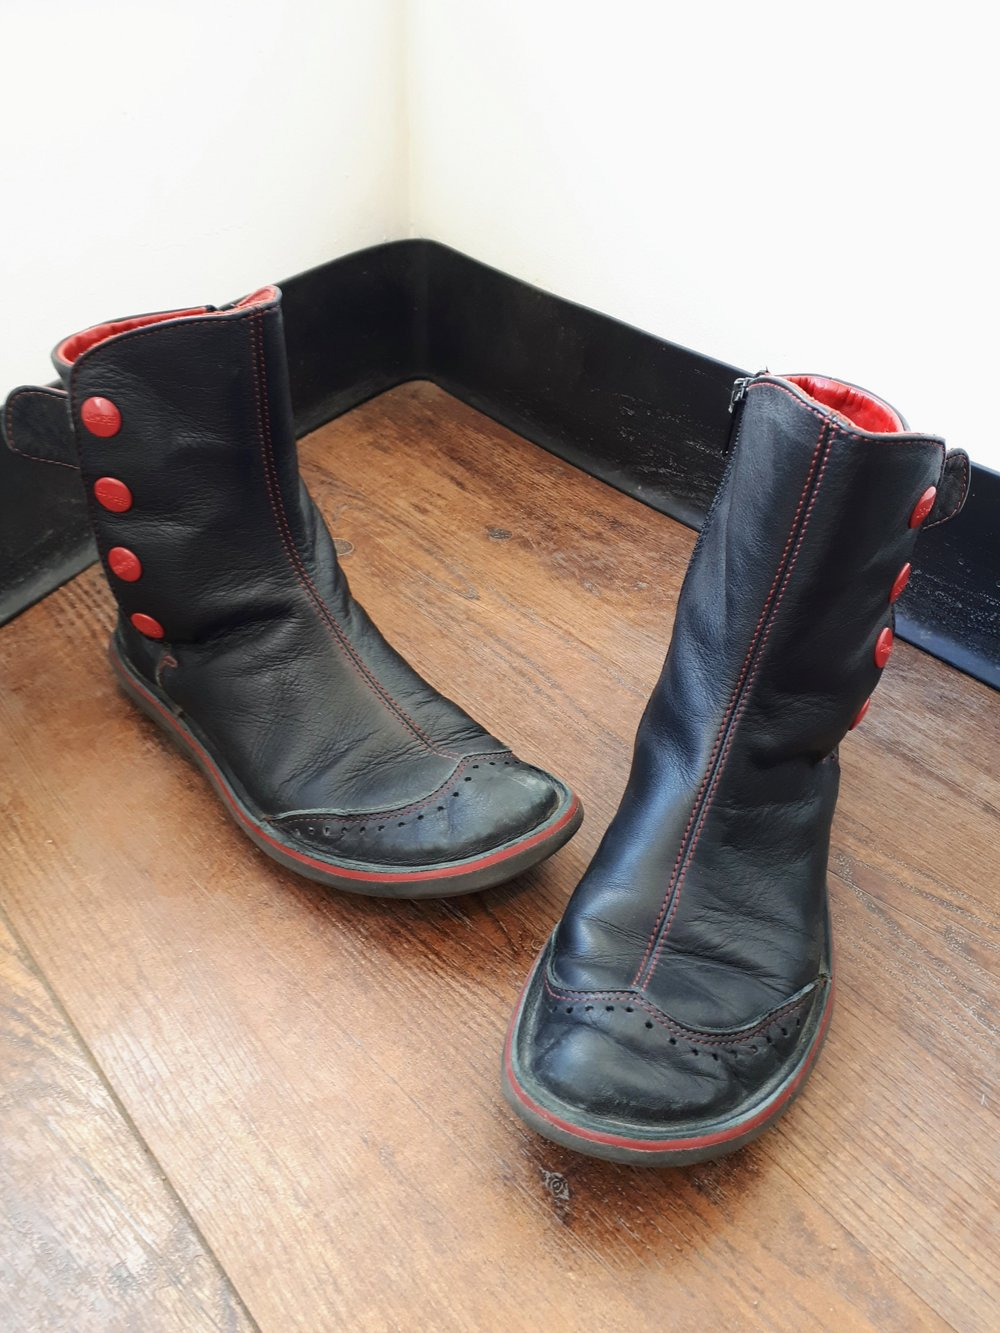 Camper boots; S8, $60